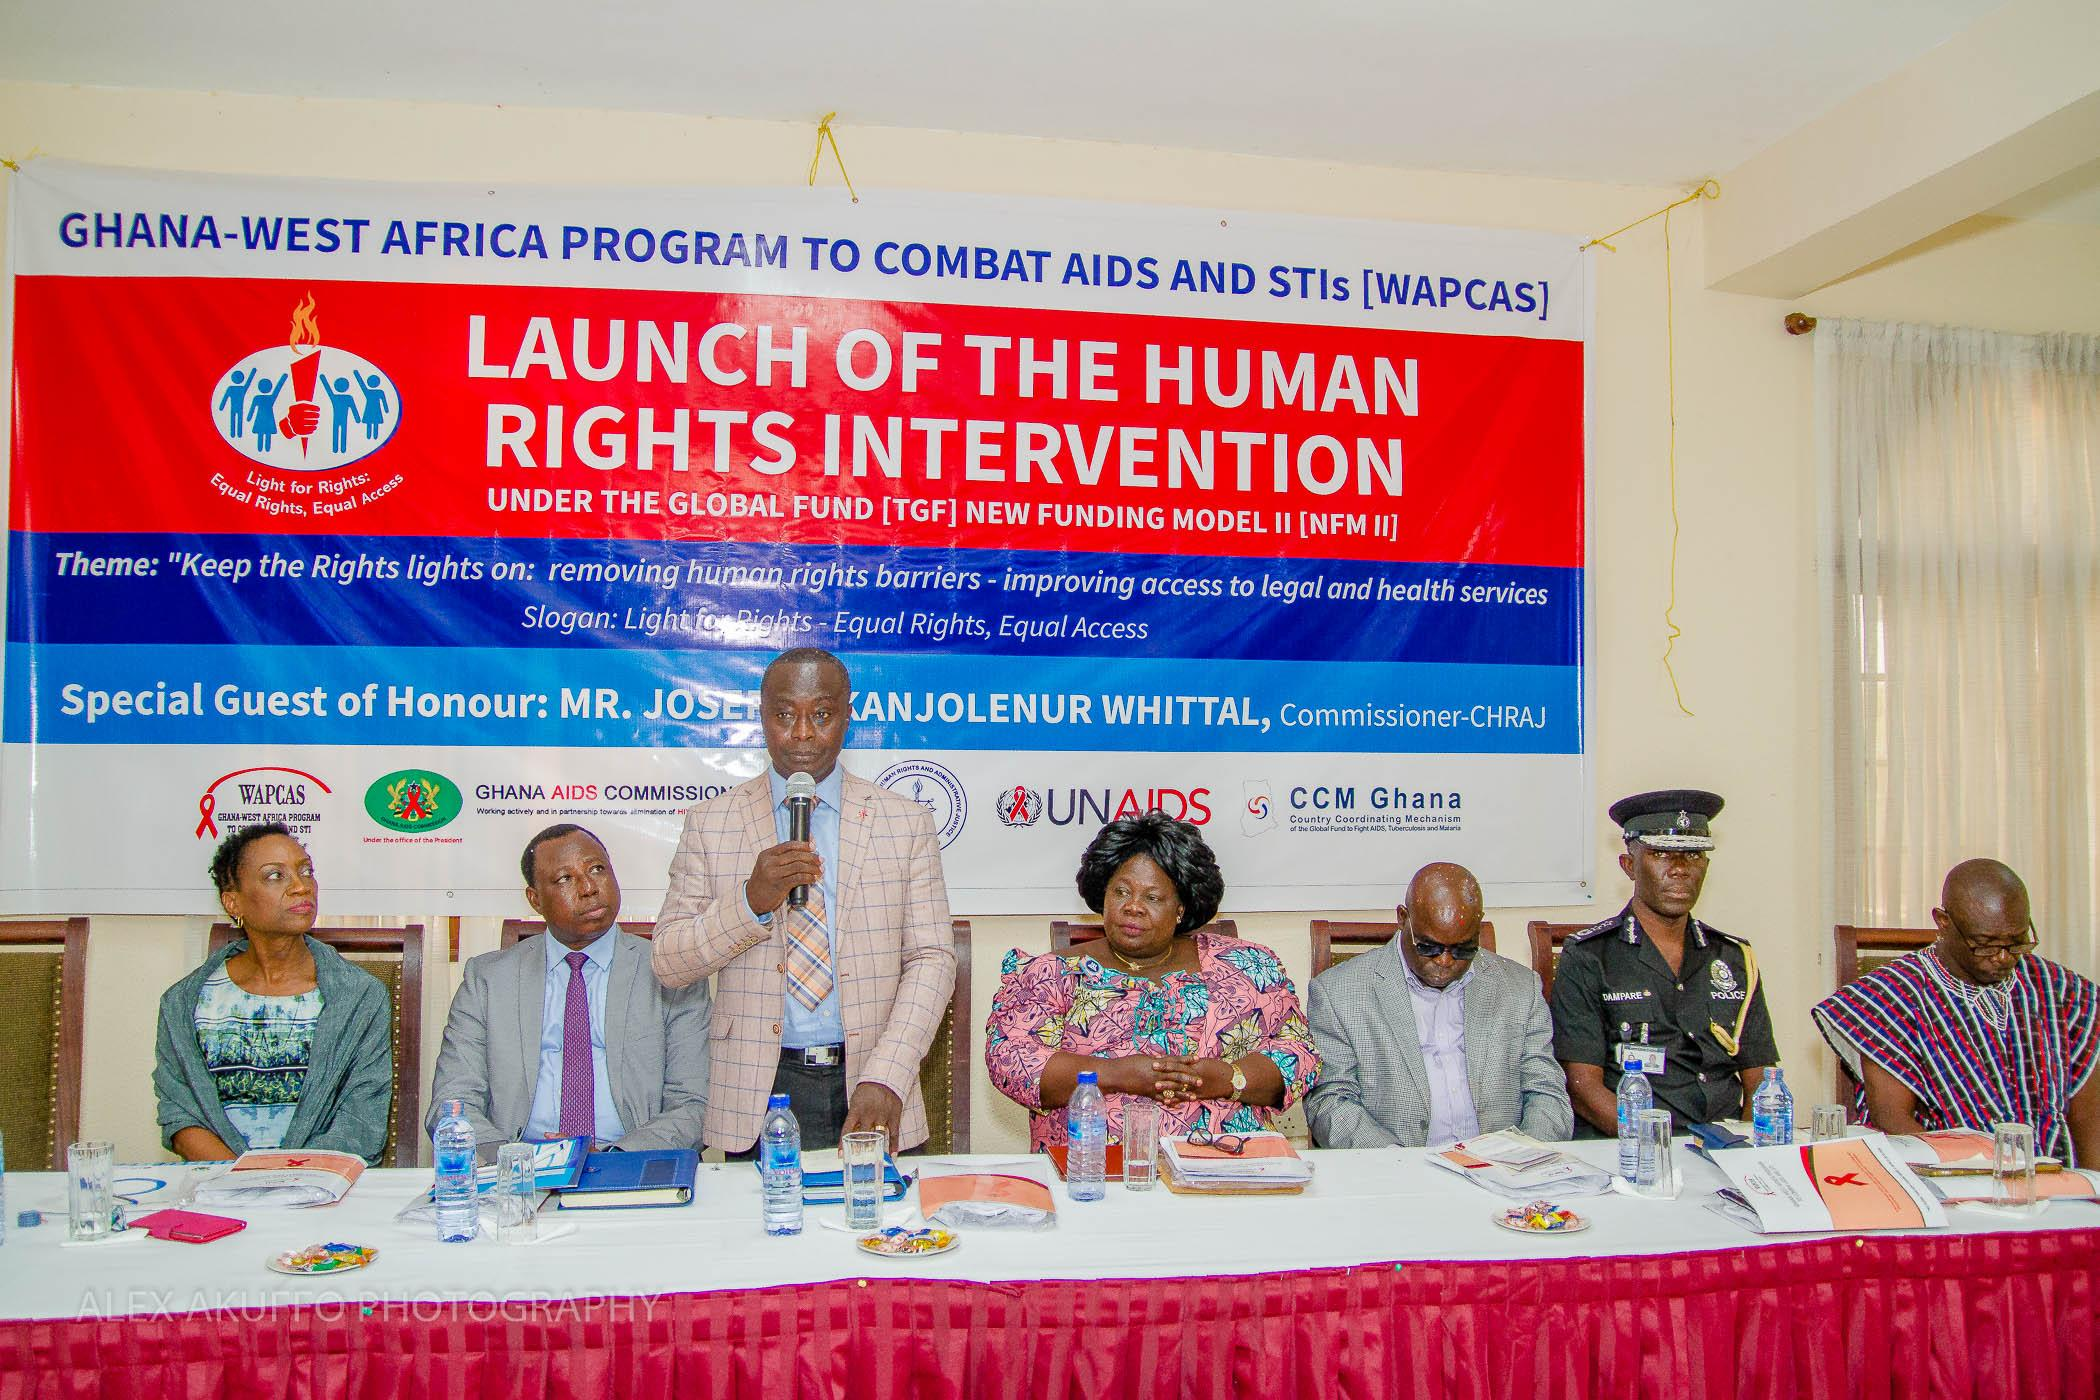 Official Launch of the Human Rights Intervention